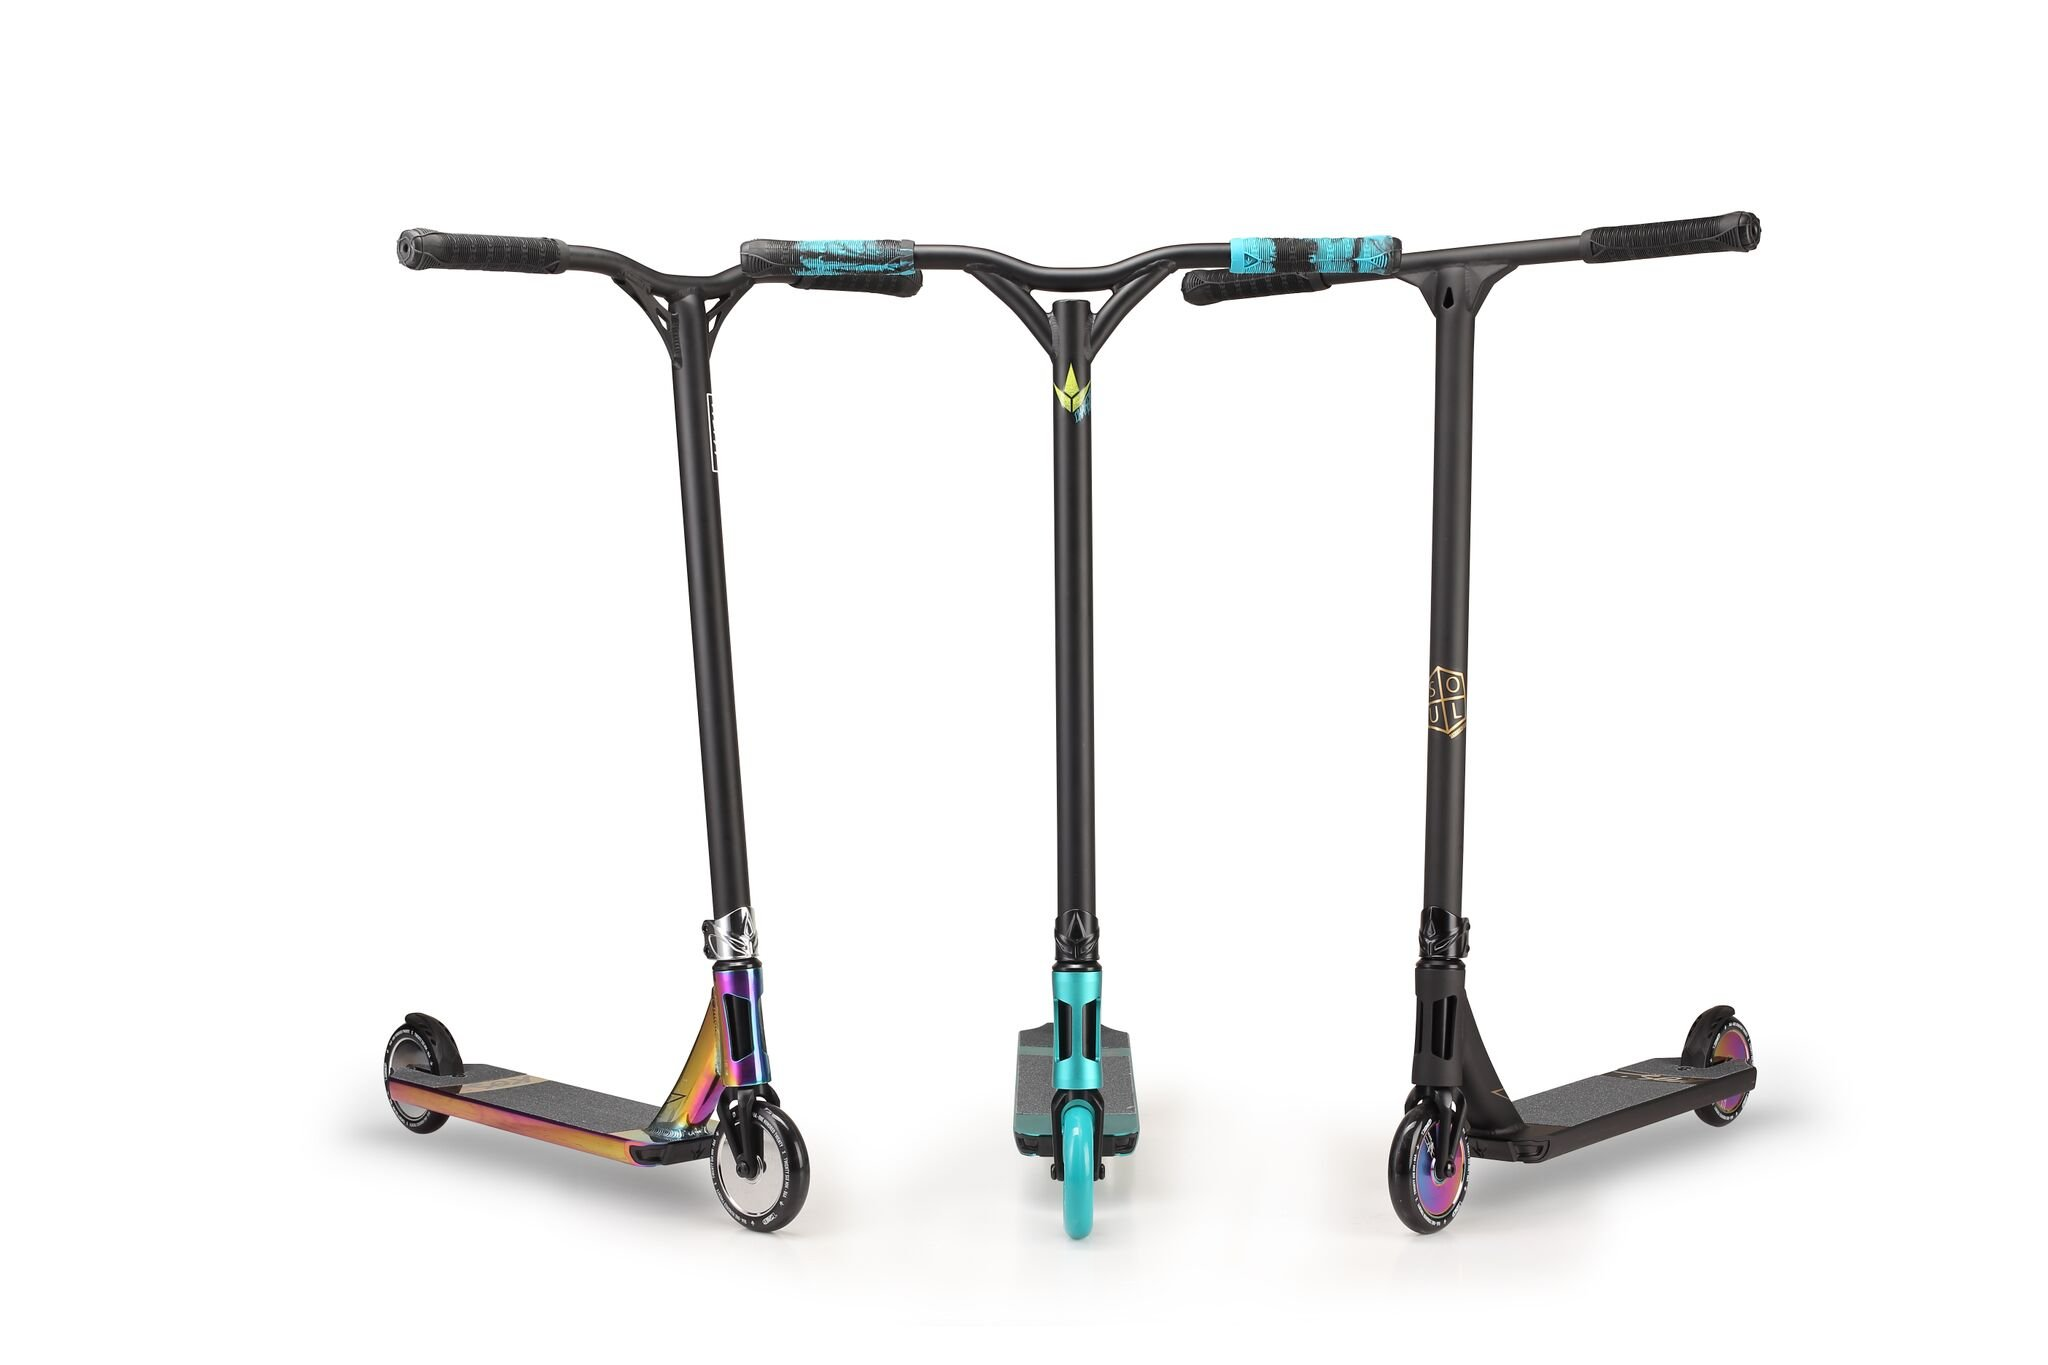 Envy KOS Series 5 Heist by Envy Scooters